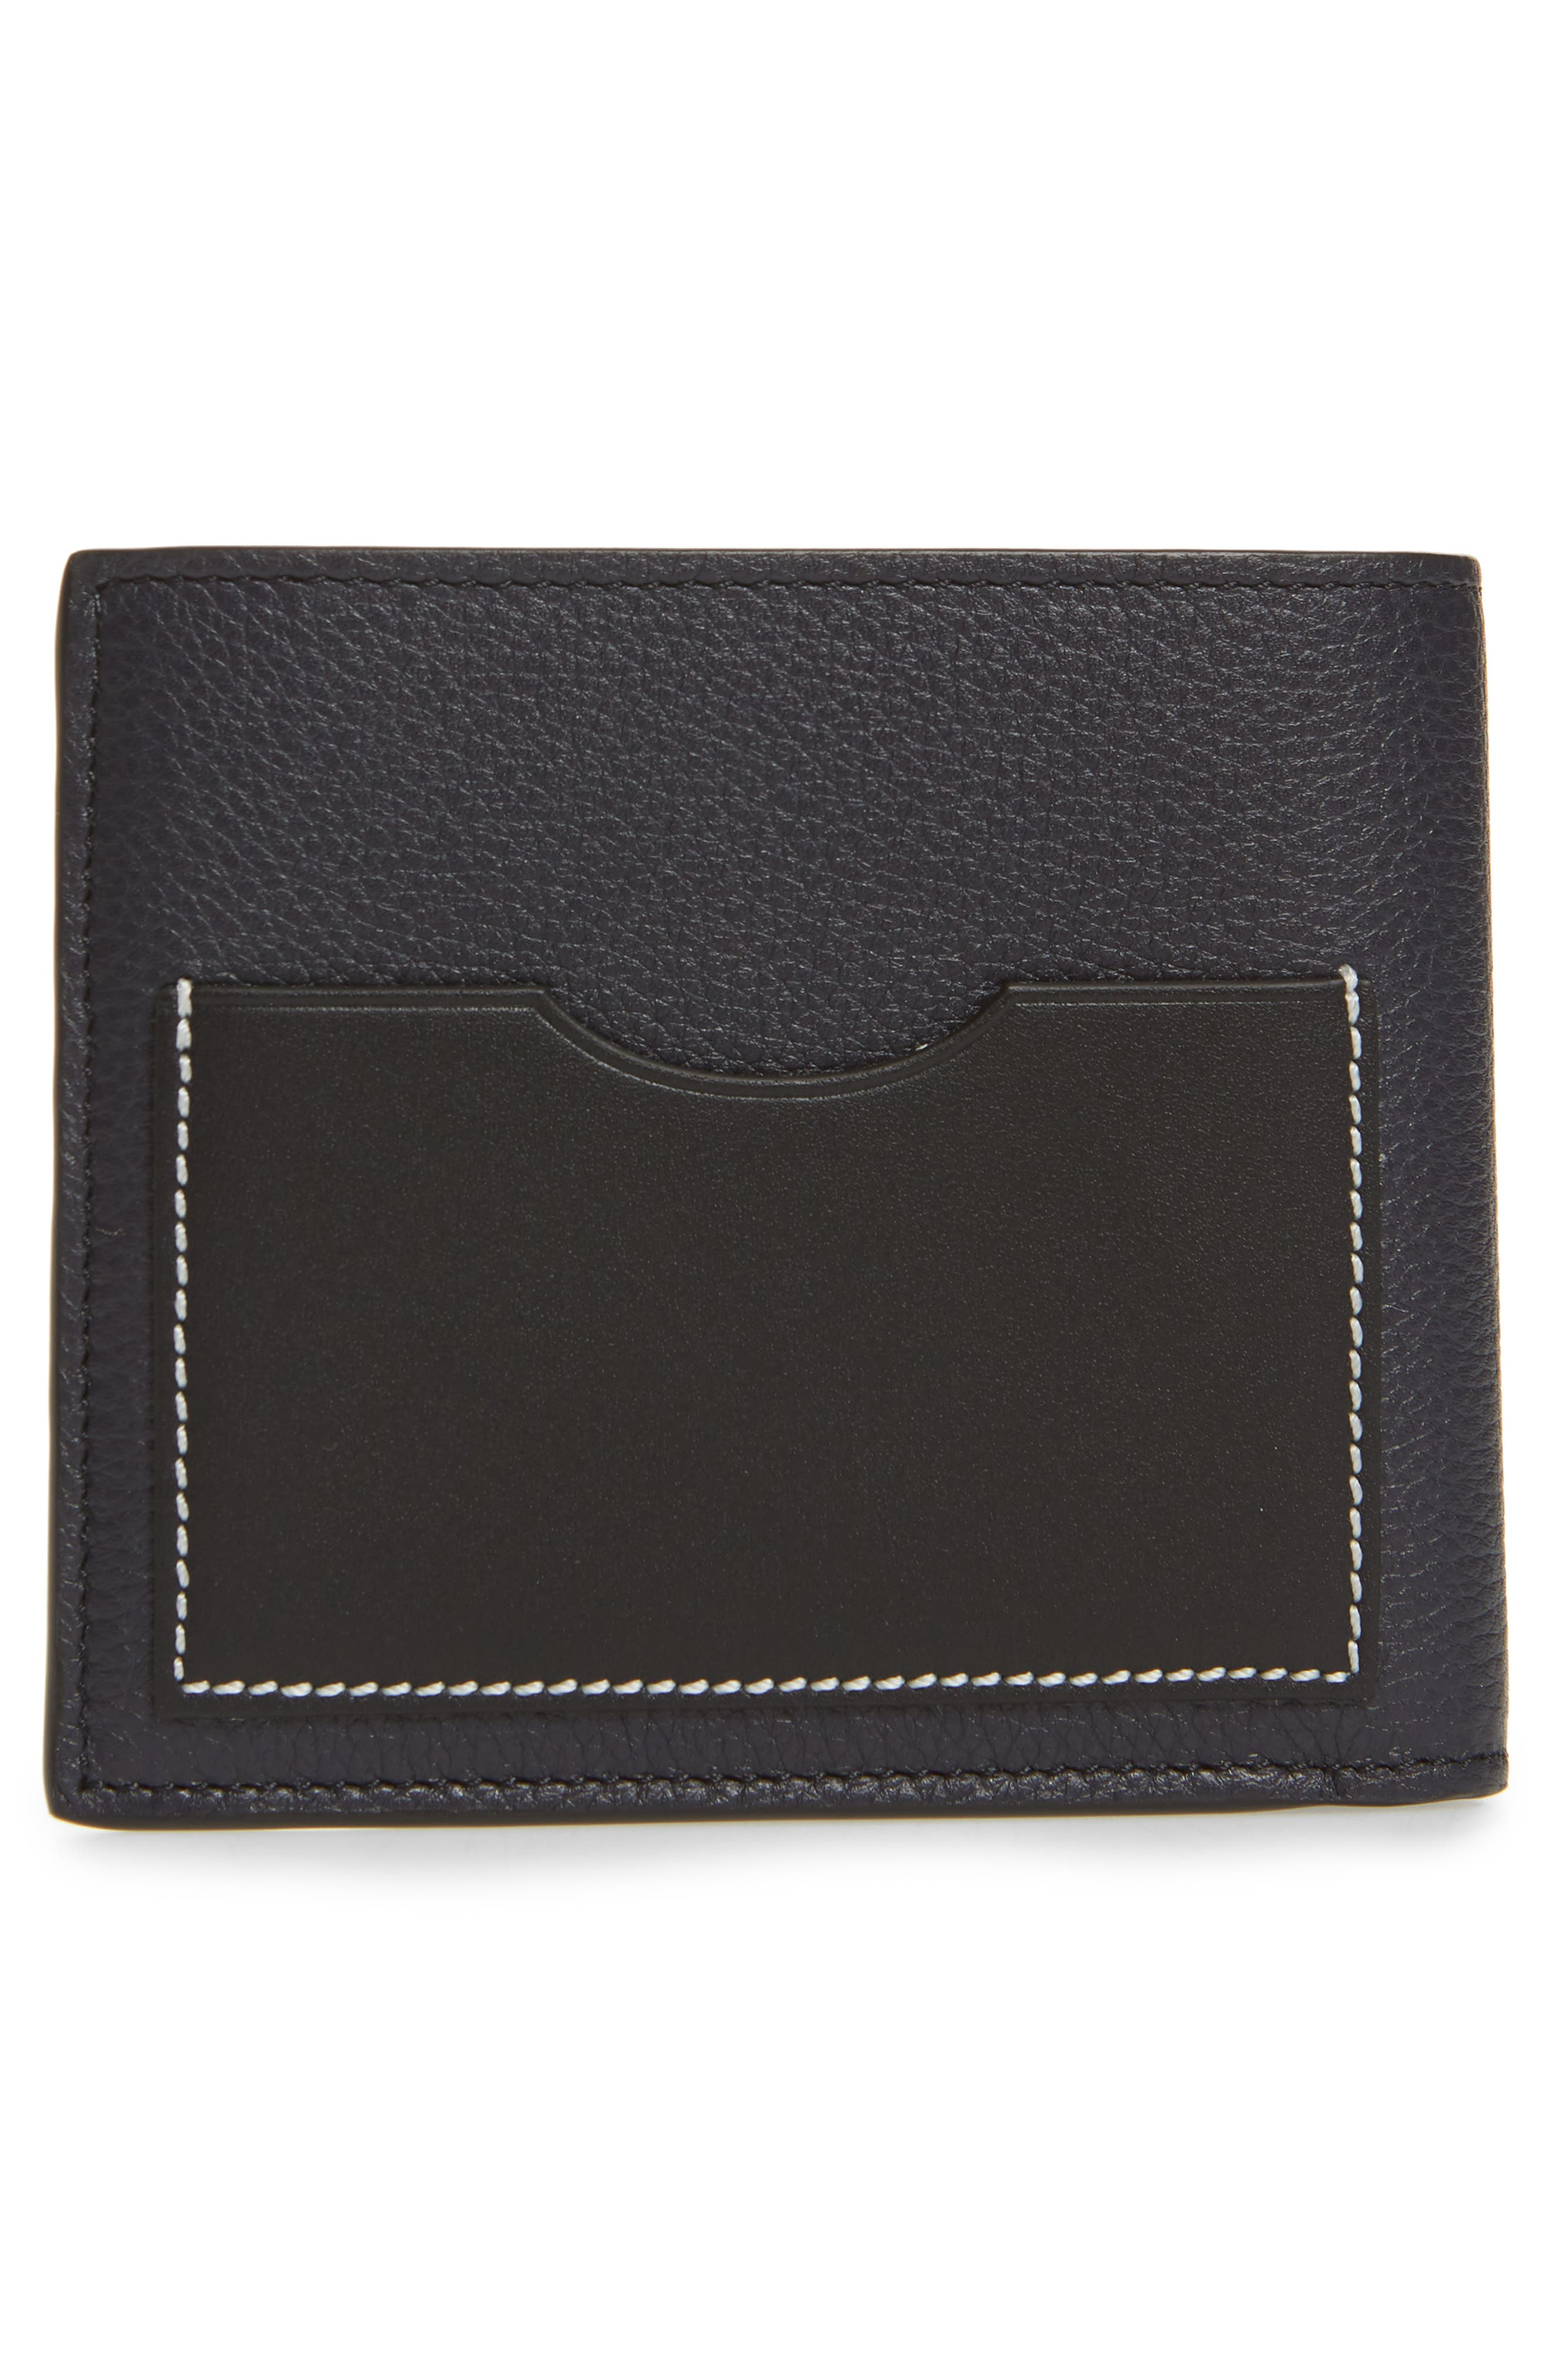 Calfskin Leather Bifold Wallet,                             Alternate thumbnail 3, color,                             405